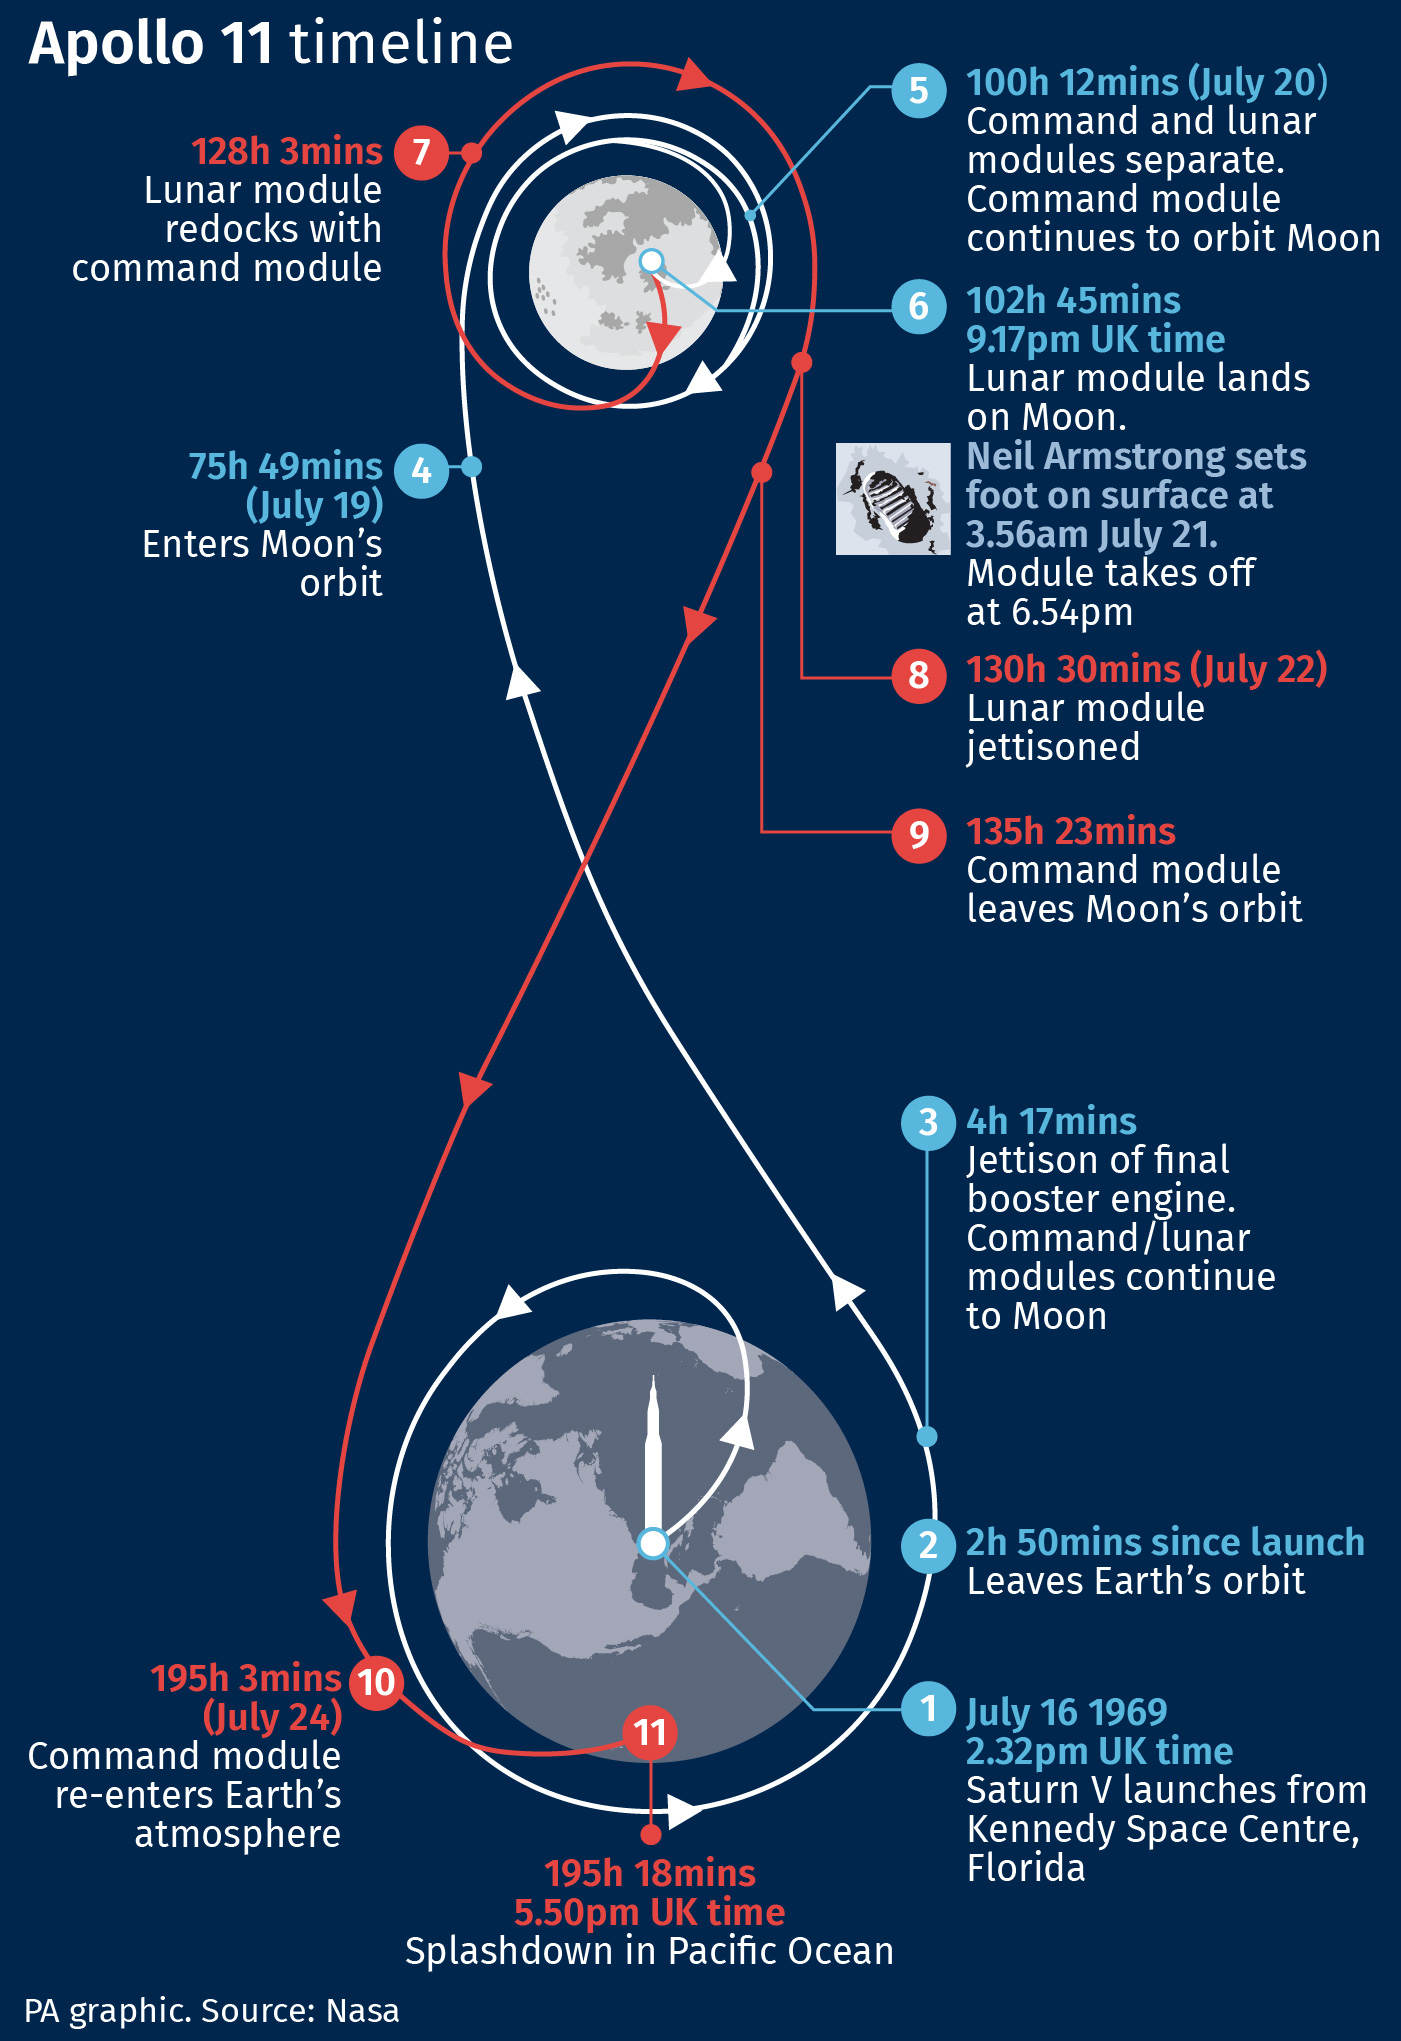 Timeline of Apollo 11